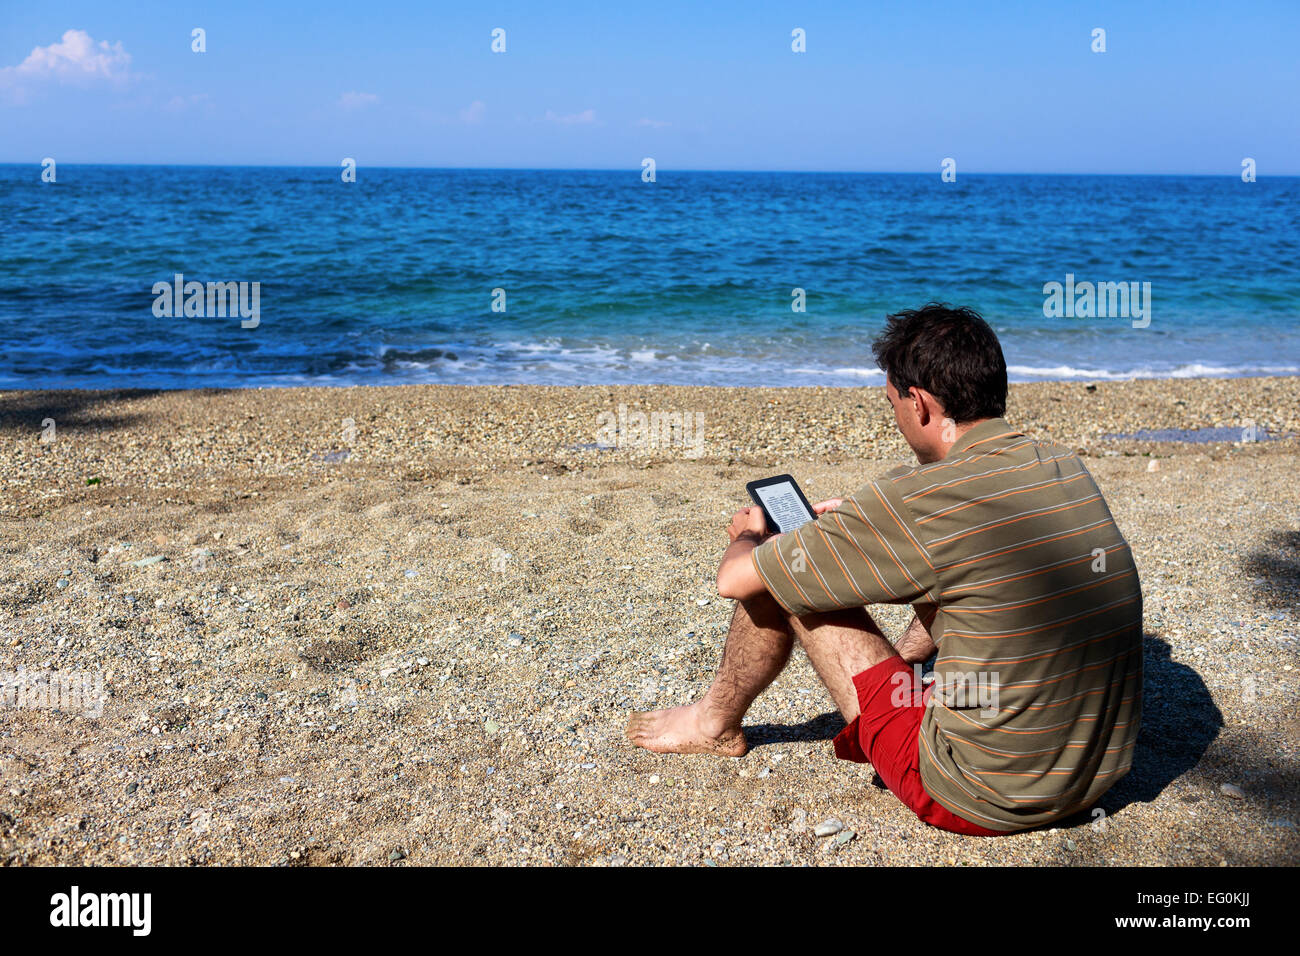 Greece, Thessaloniki, Man reading e-reader on beach - Stock Image